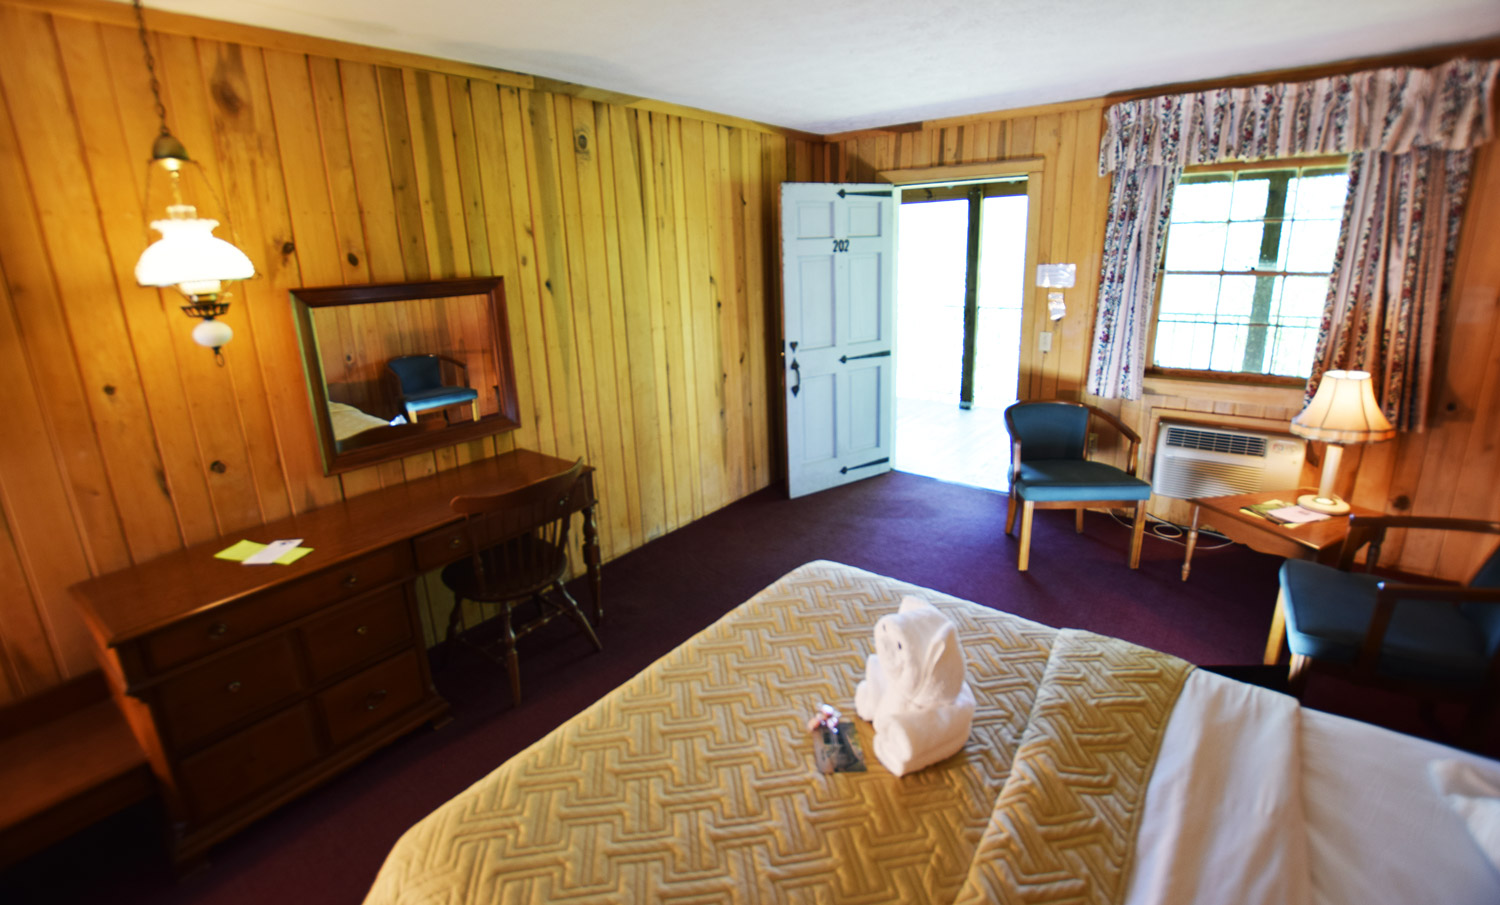 Lodge guest room at Graves Mountain Farm & Lodges by Shenadoah National Park in the VA Blue Ridge